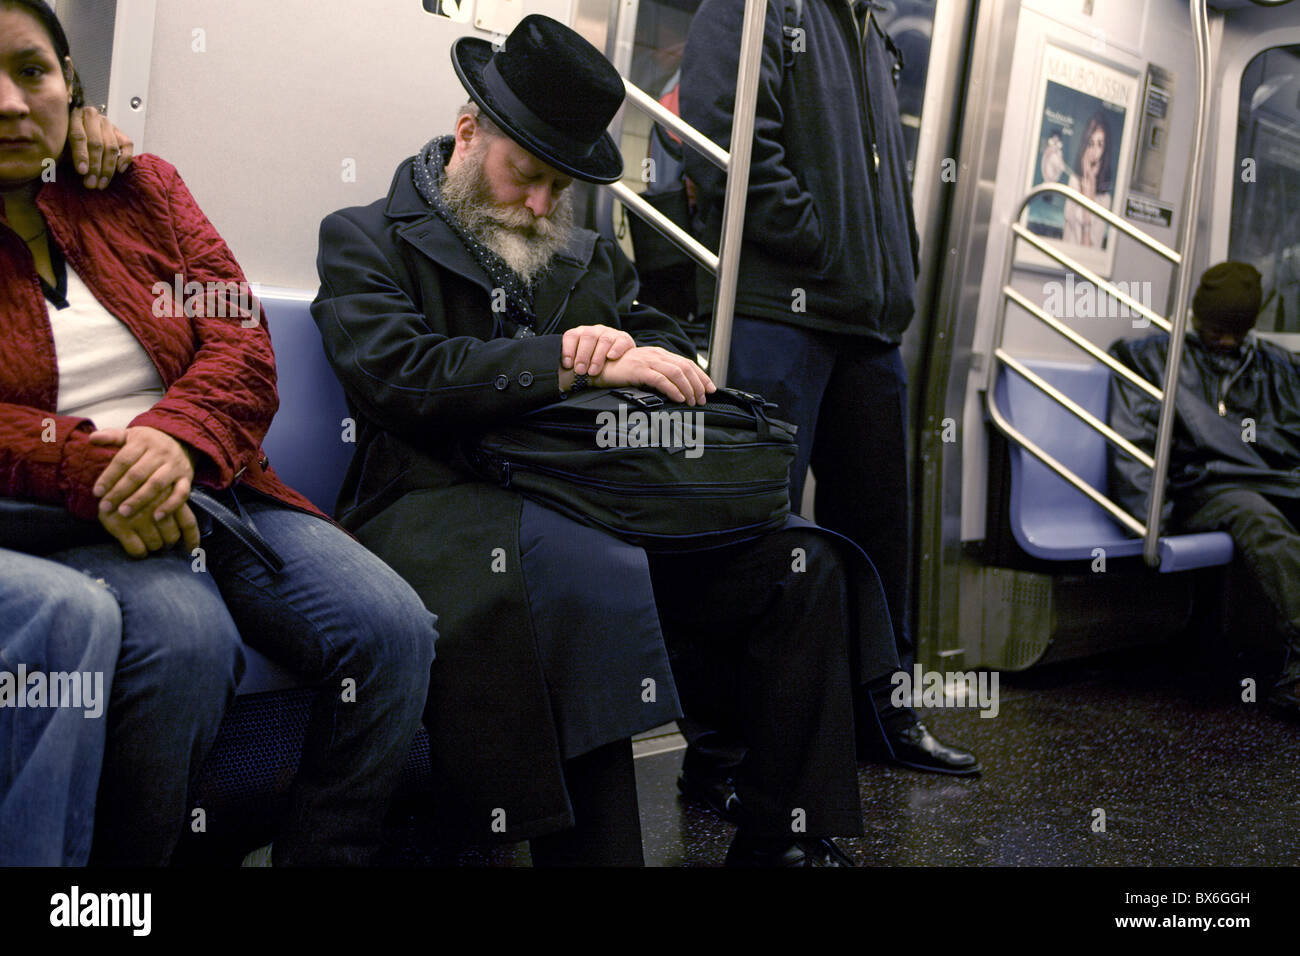 Tired Orthodox Jew rides the subway from Manhattan home to Brooklyn. - Stock Image